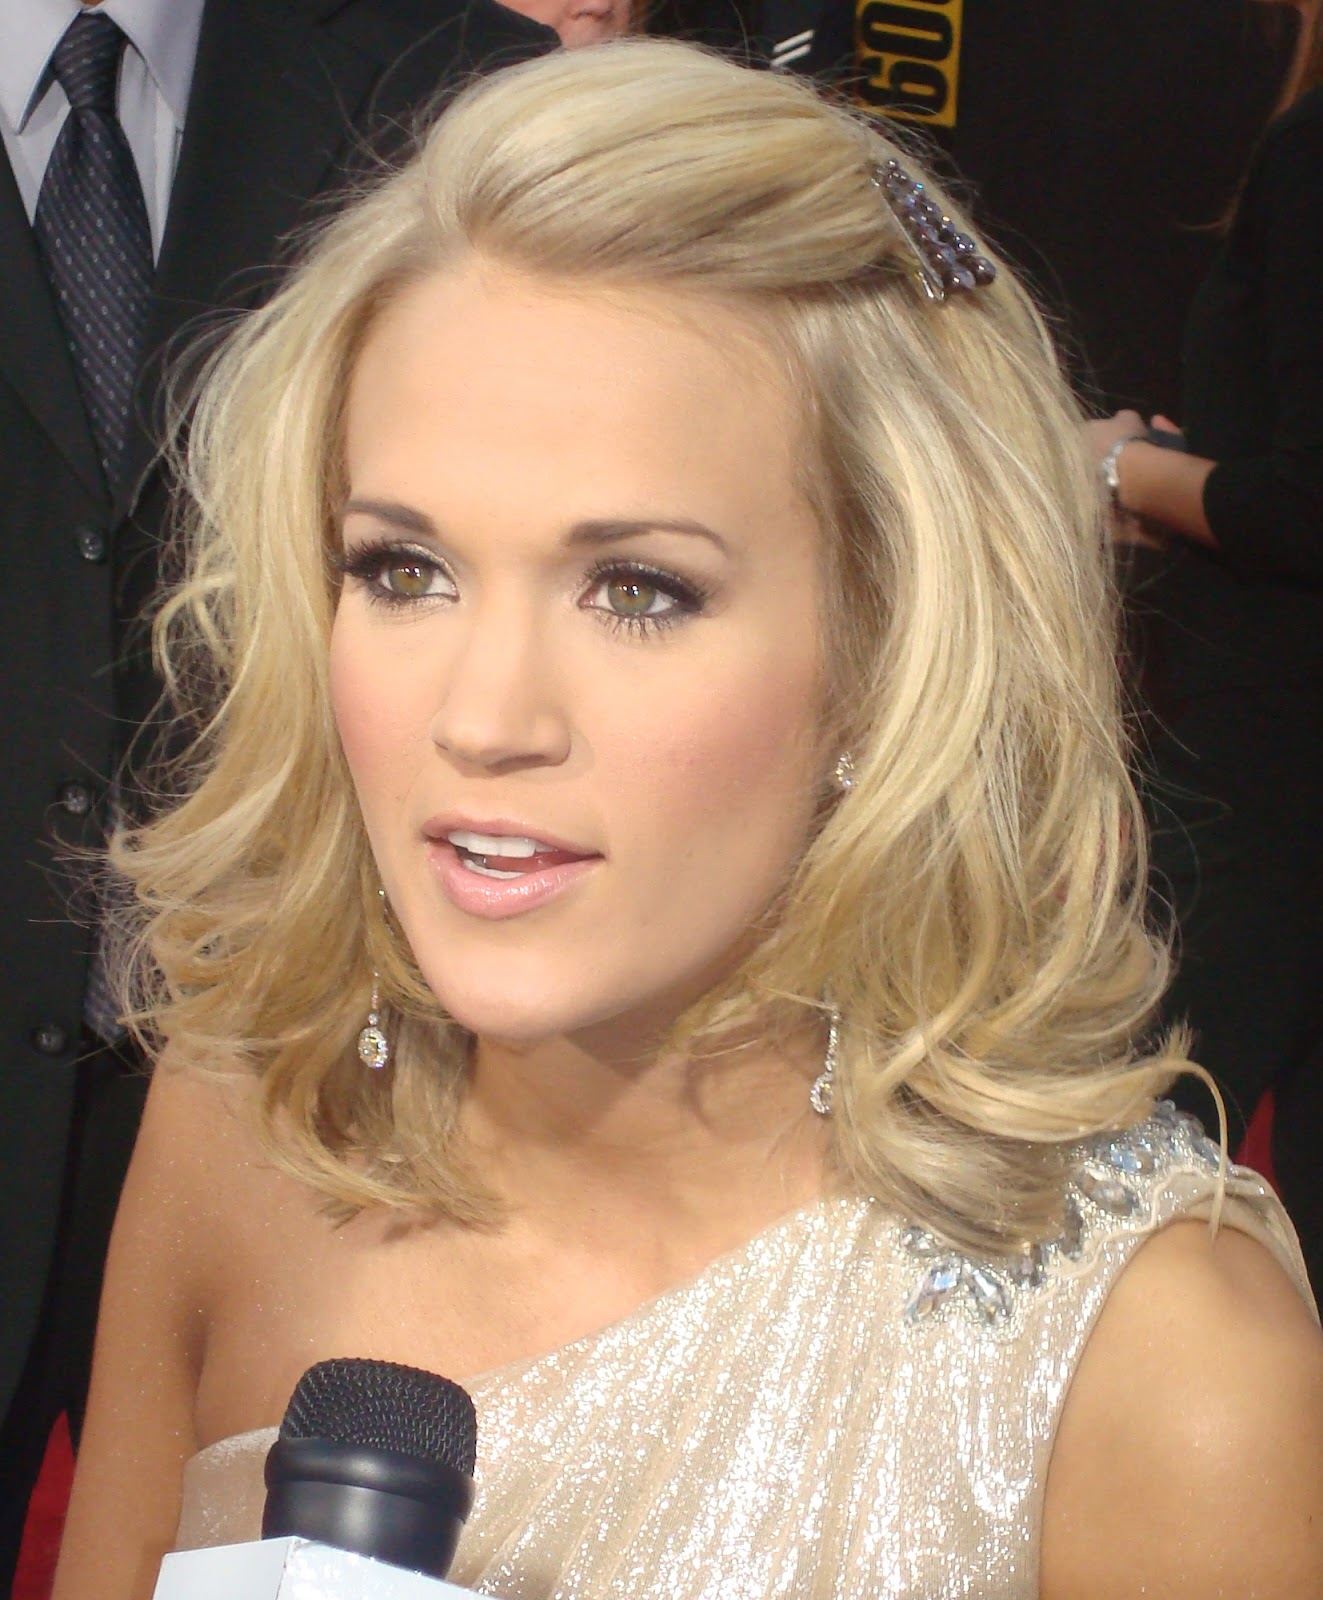 Carrie Underwood Updo Hairstyles 2012 pics